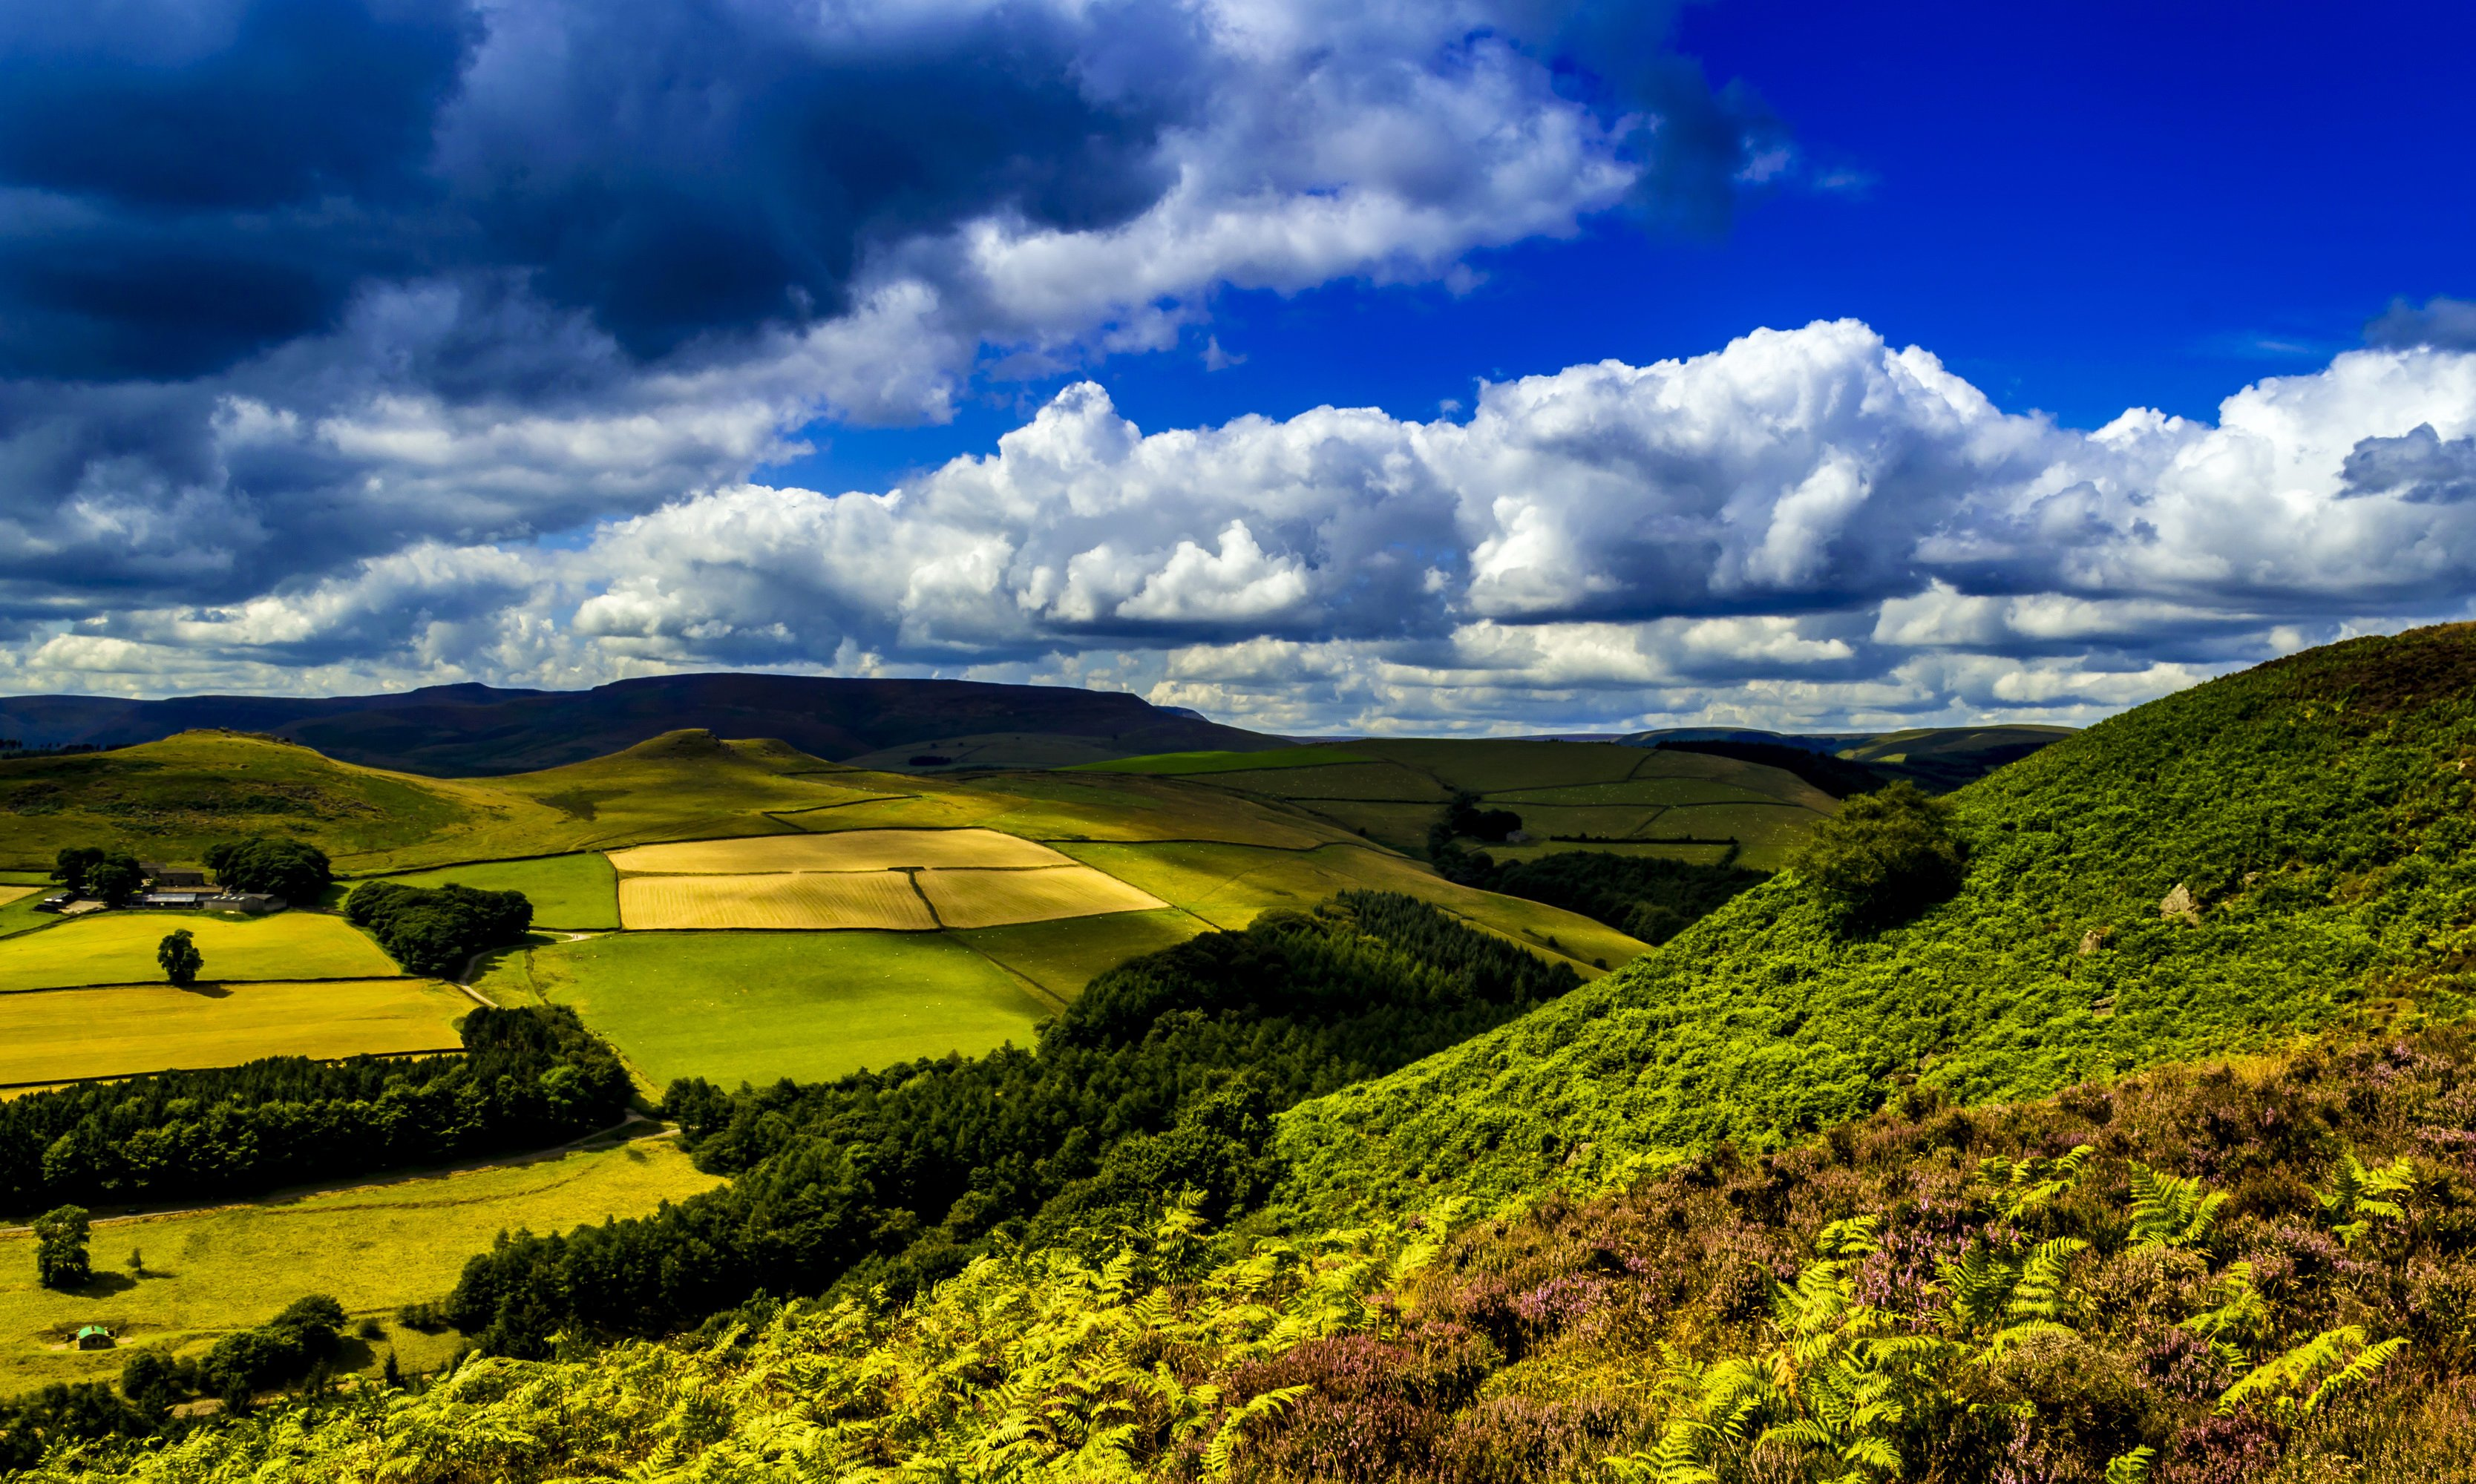 Natural Scenery Images